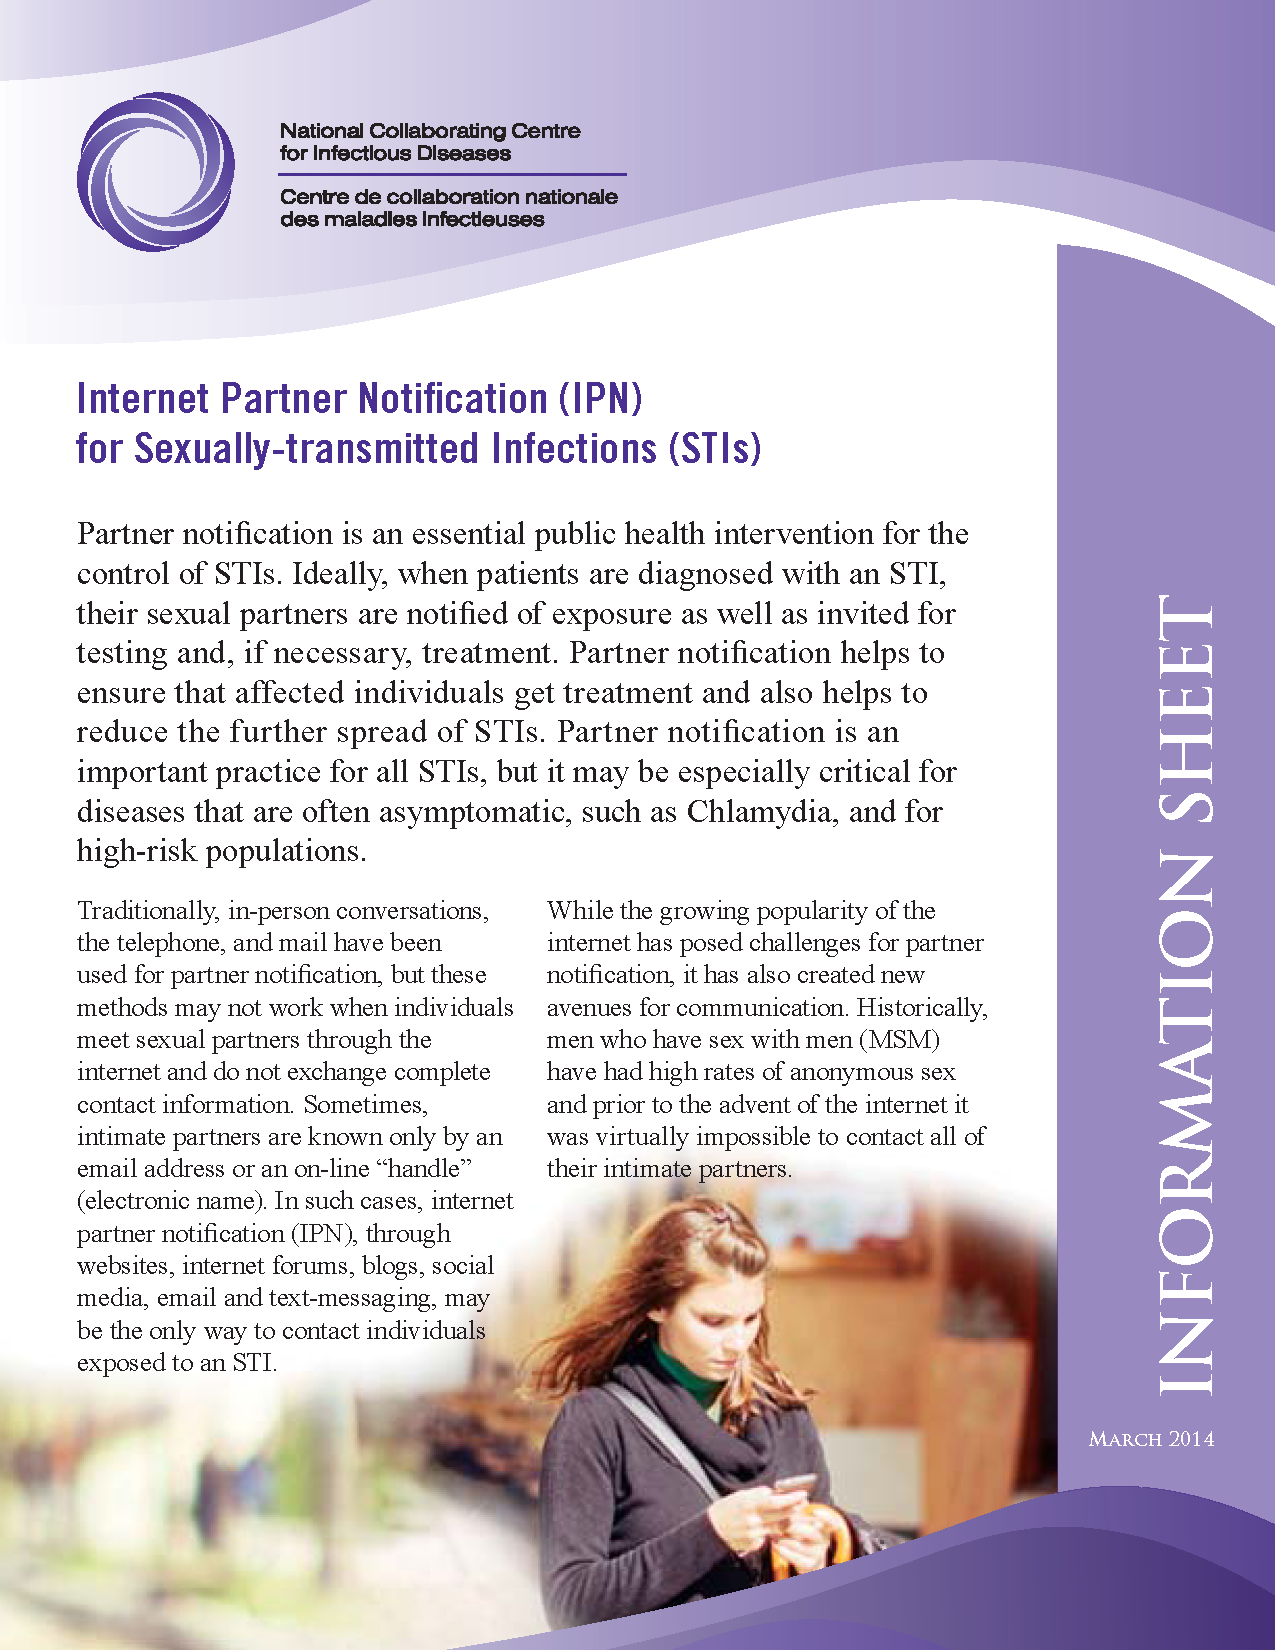 Internet Partner Notification for Sexually-transmitted Infections